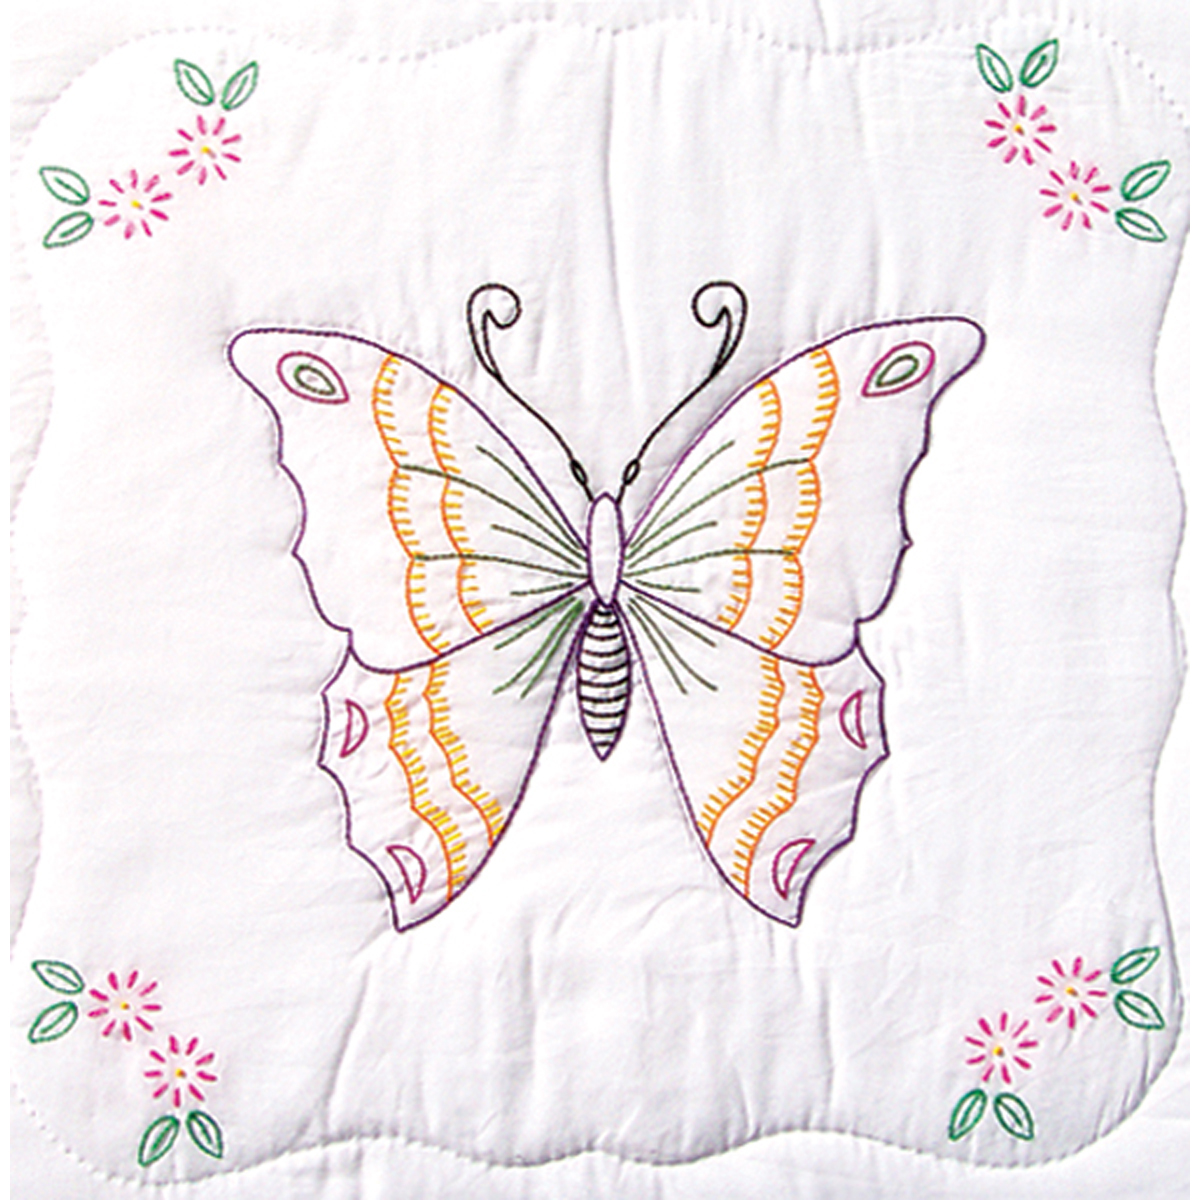 Stamped Embroidery Blocks - 18in - Butterfly